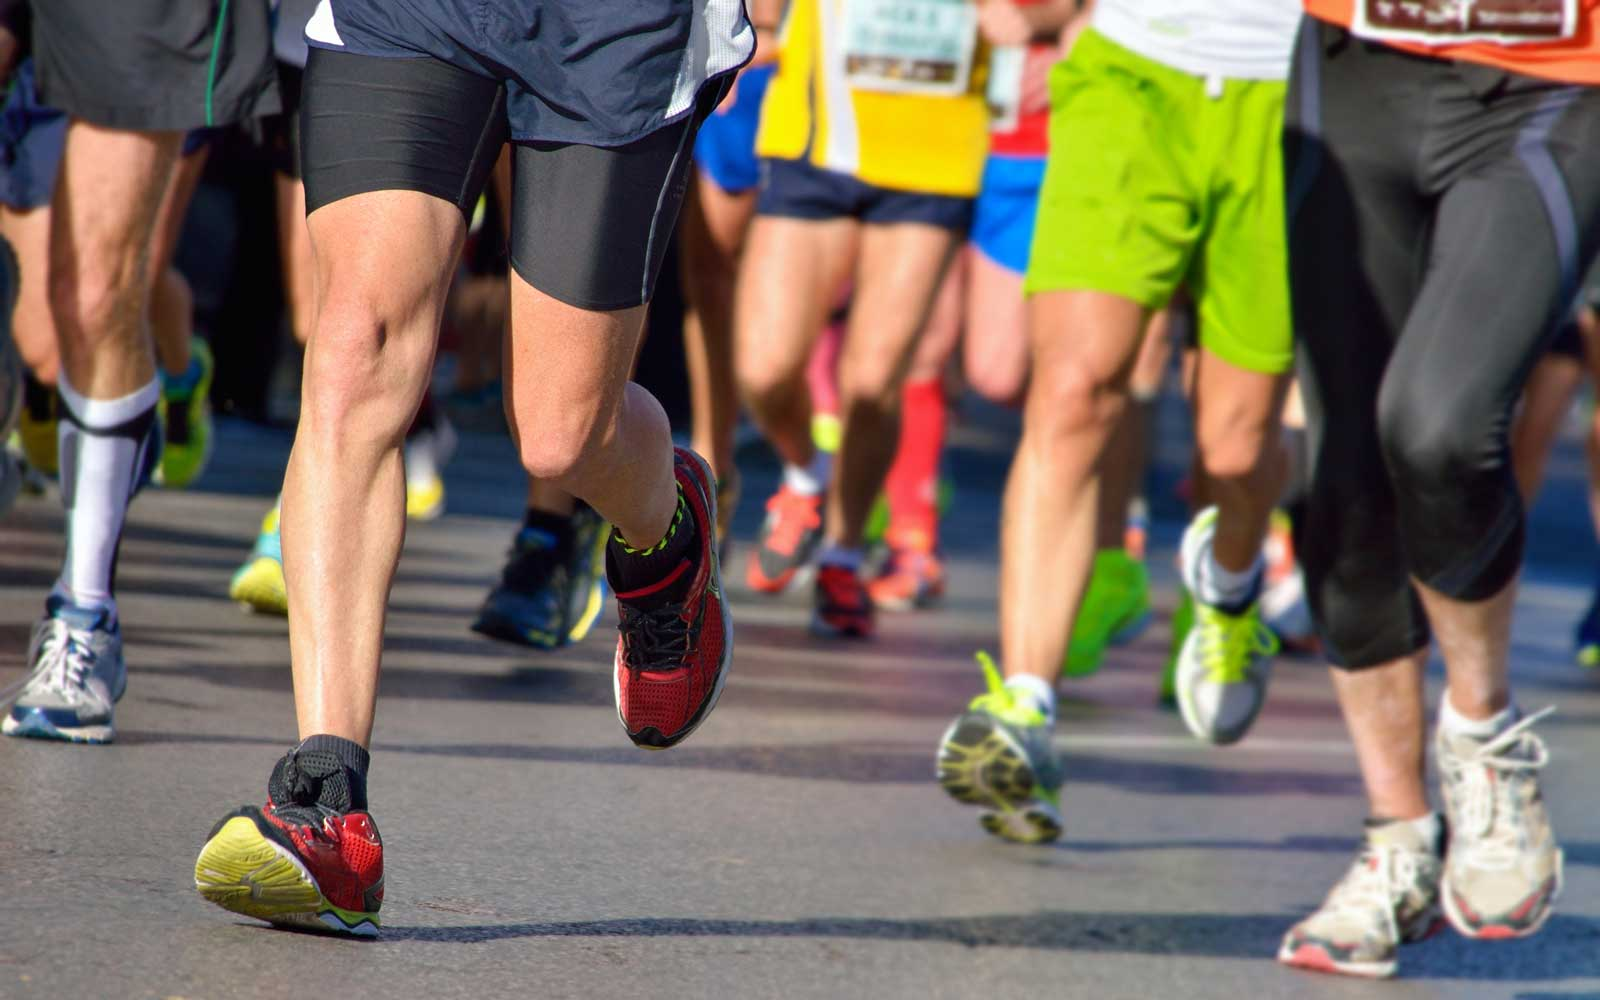 Man Signed Up for His First Half Marathon — and Accidentally Ran the Full